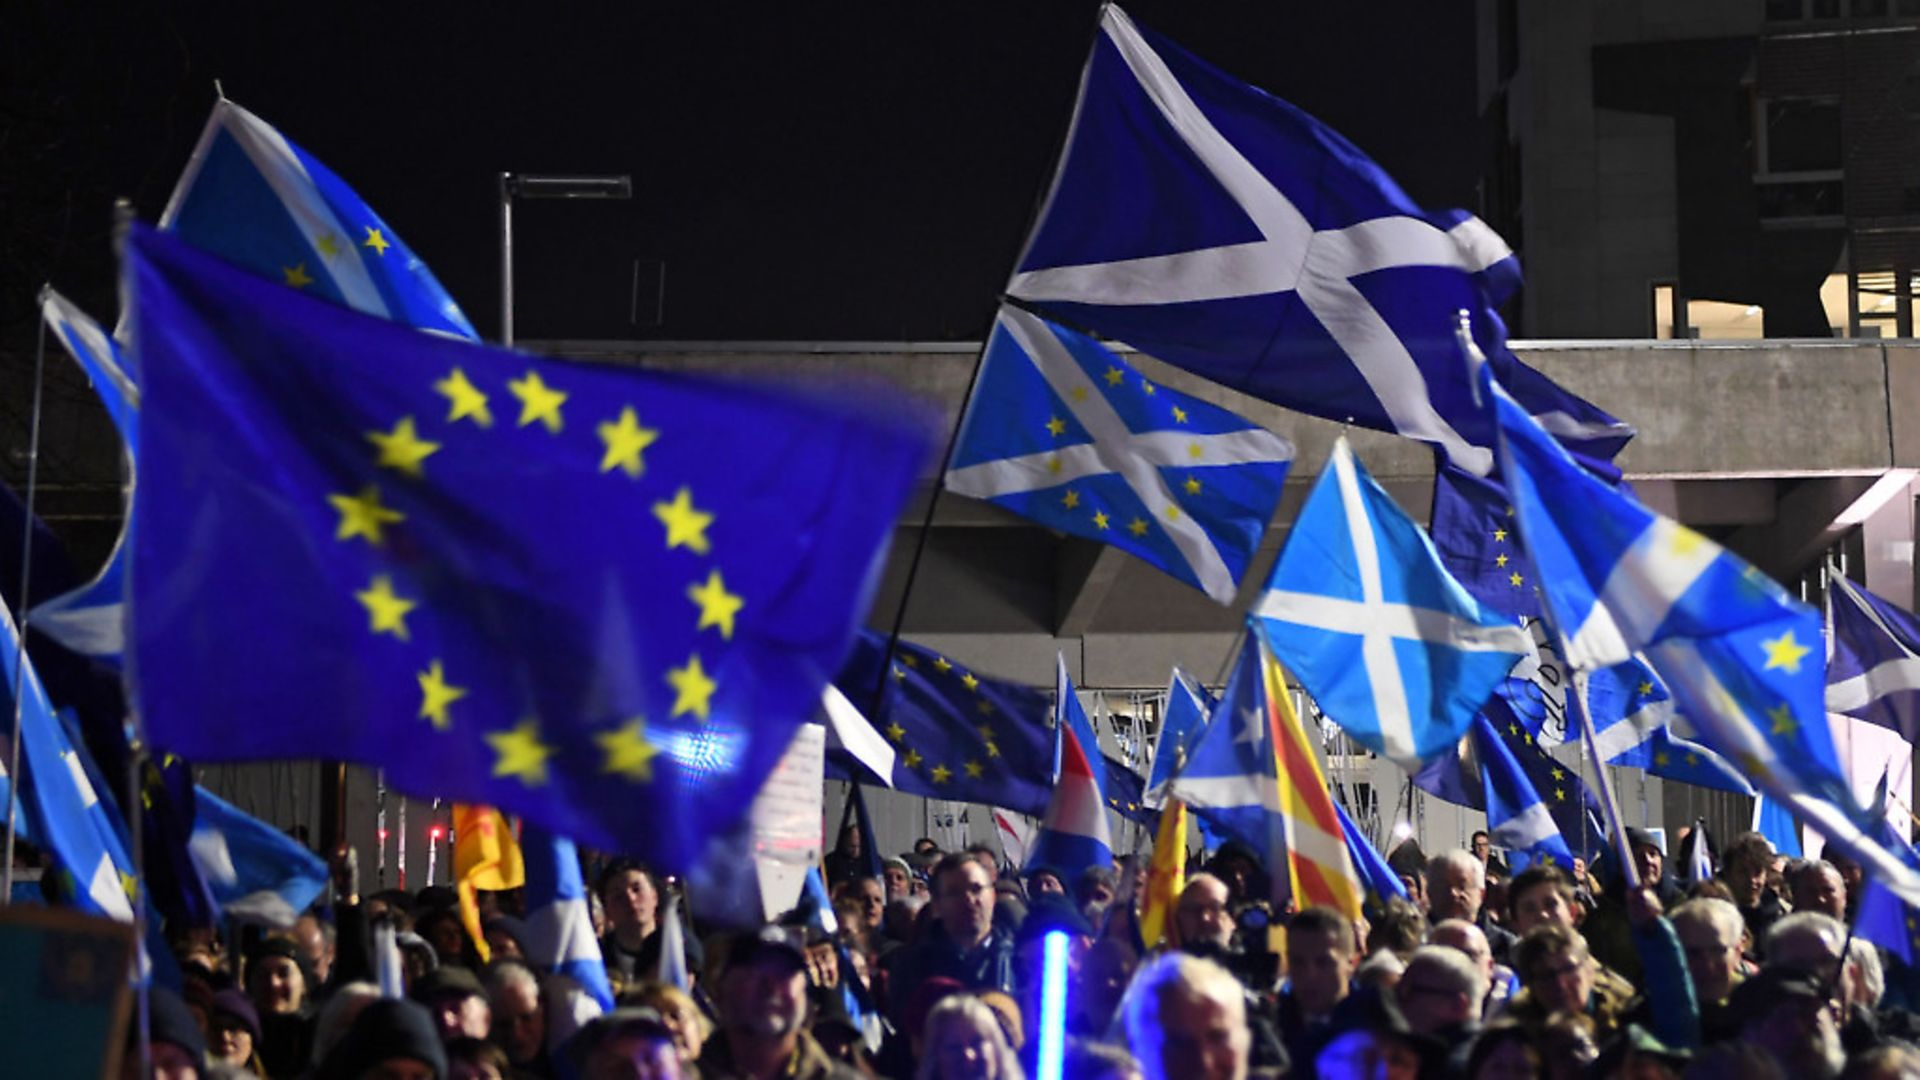 Saltires and European Union flags flutter in the breeze during a protest by anti-Brexit activists in Edinburgh, Scotland on January 31, 2020. Photo: ANDY BUCHANAN/AFP via Getty Images - Credit: AFP via Getty Images